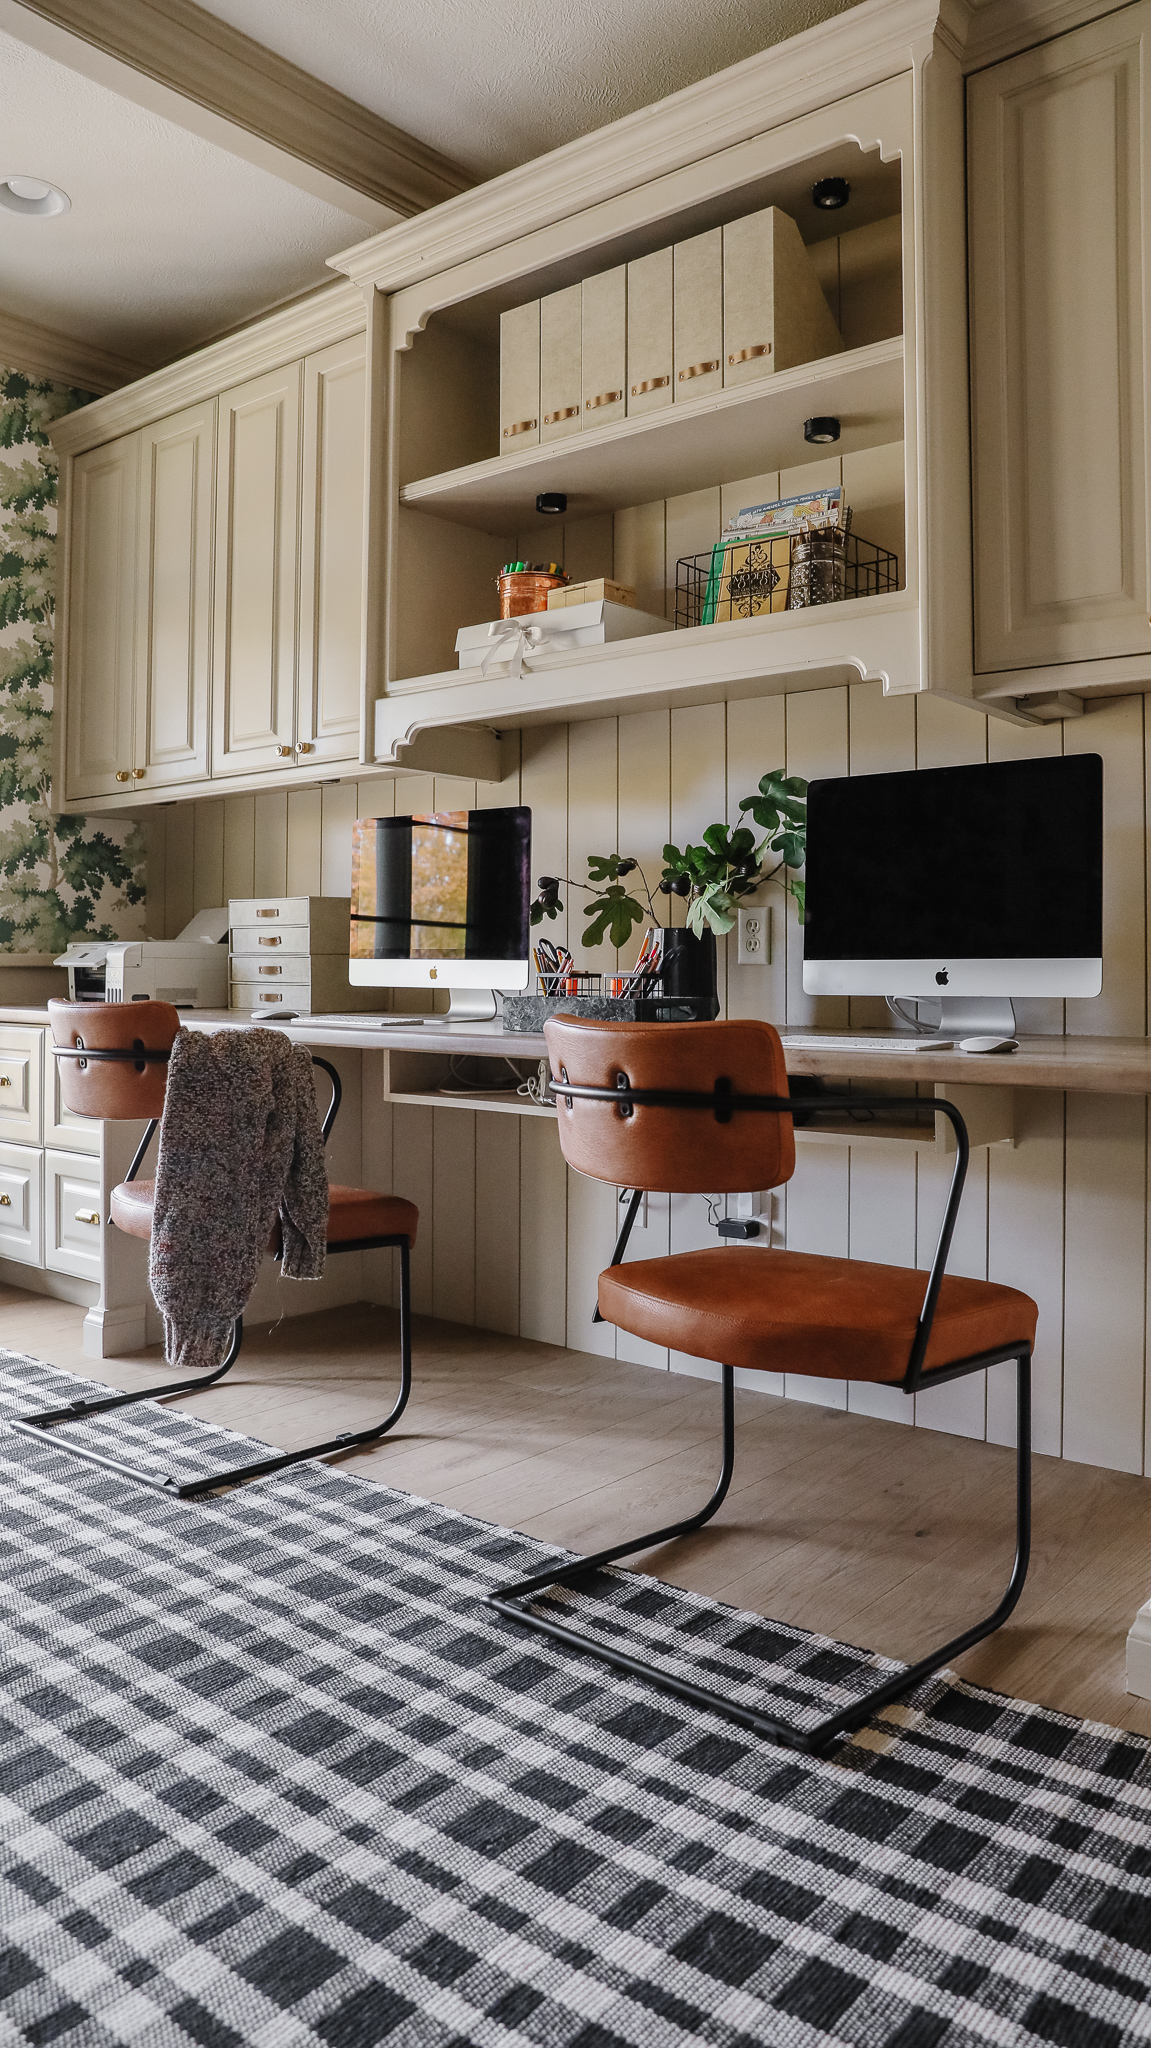 'Accessible Beige' from Sherwin Williams, IMAGE CREDIT: Chris Loves Julia